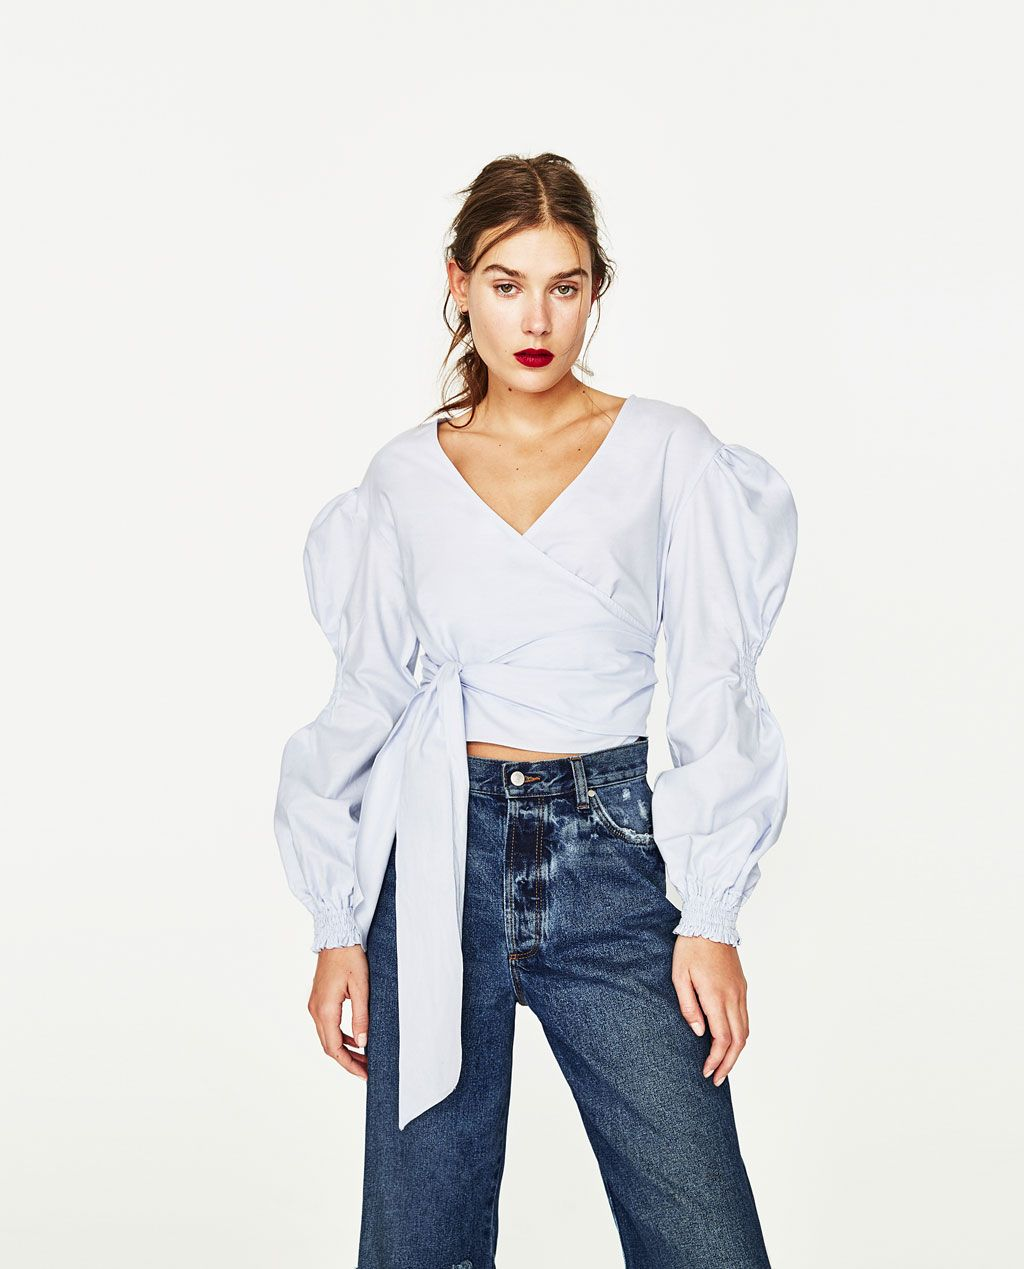 831d3c9938baf8 Shirts Women | New Collection | ZARA United States | Shapes in 2019 ...